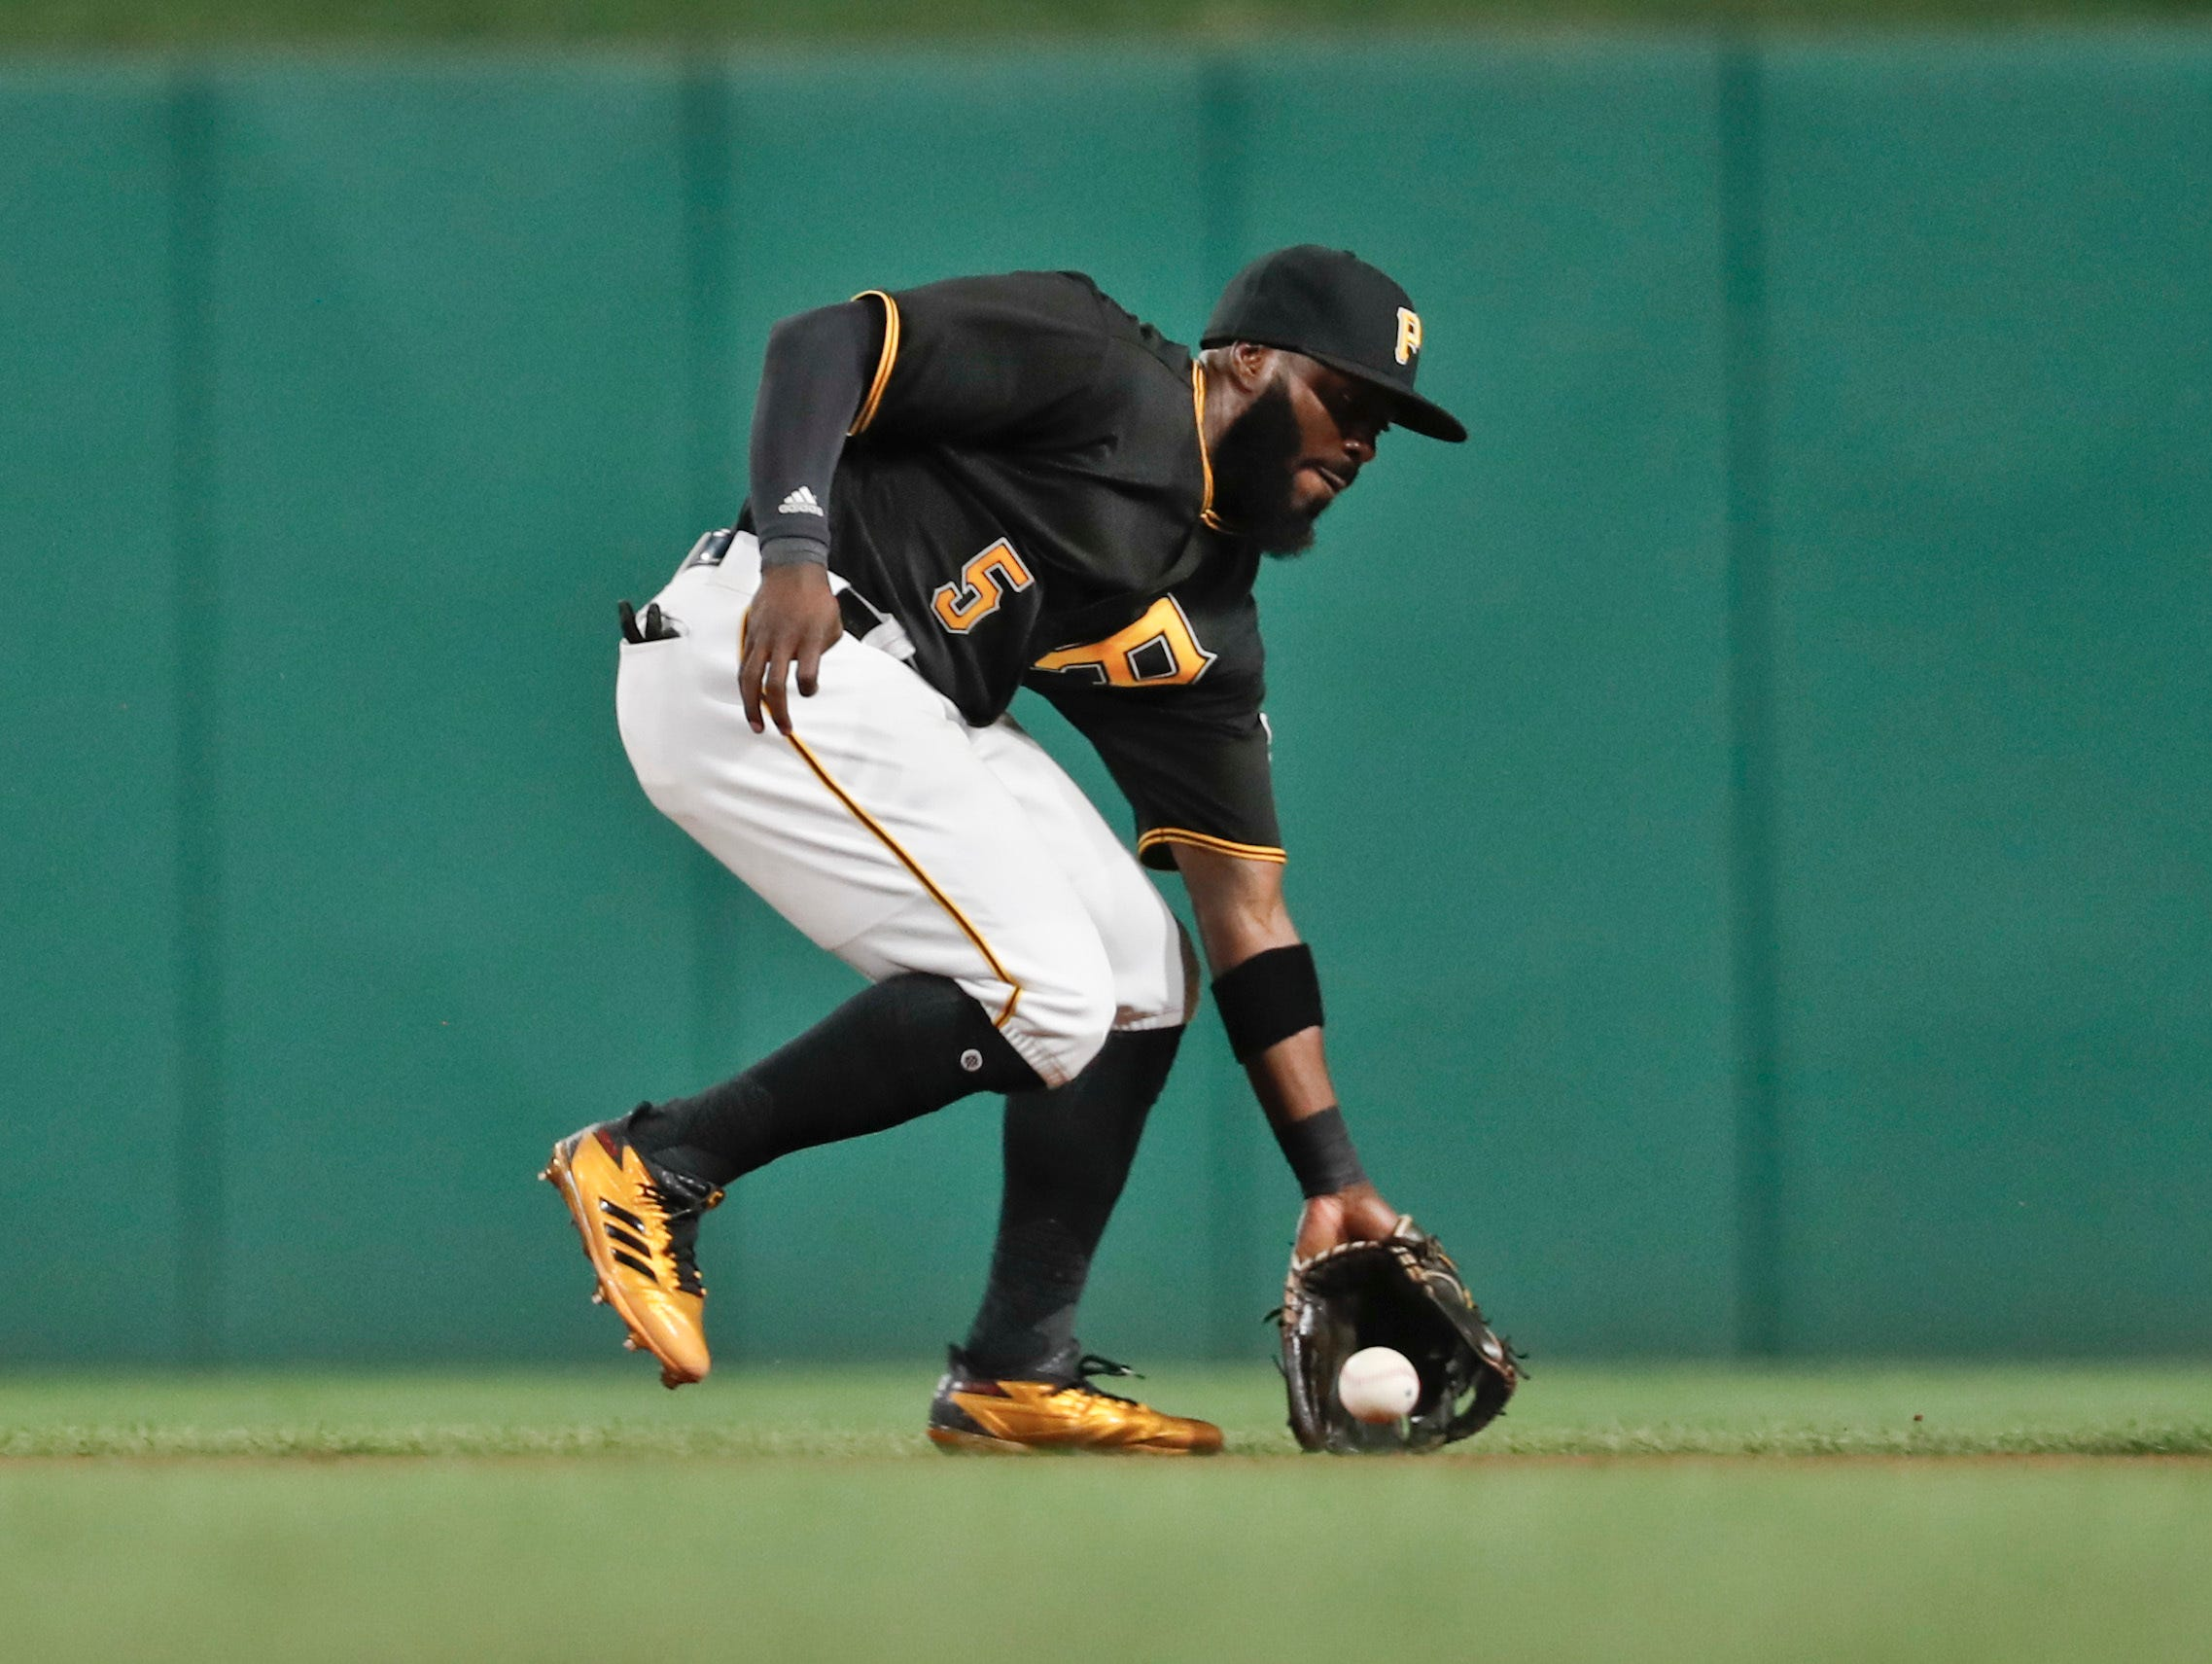 Pittsburgh Pirates second baseman Josh Harrison fields a ground ball against the St. Louis Cardinals in a baseball game, Saturday, Aug. 4, 2018, in Pittsburgh.